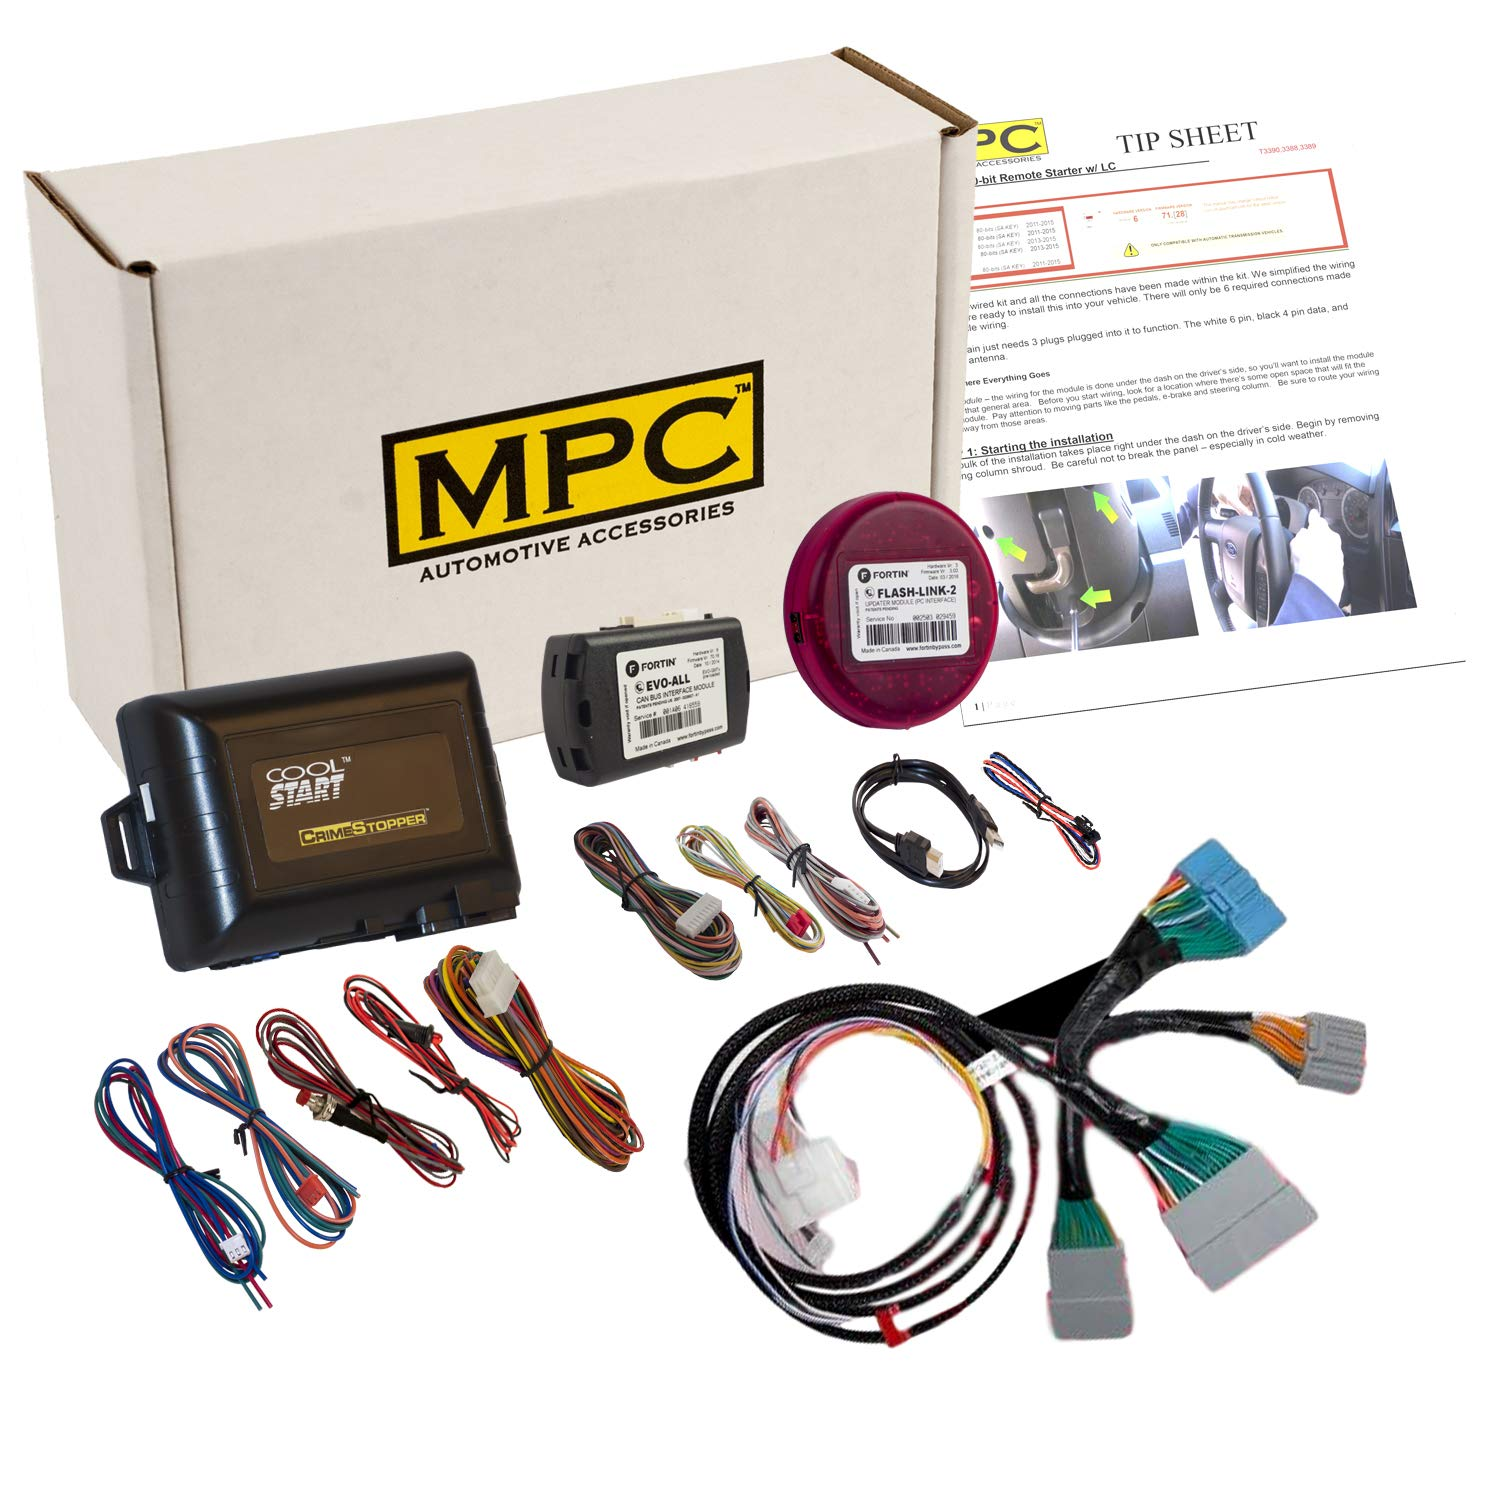 MPC Complete Plug-n-Play Factory Remote Activated Remote Start Kit for 2016-2018 Honda HRV - Includes Software Loader